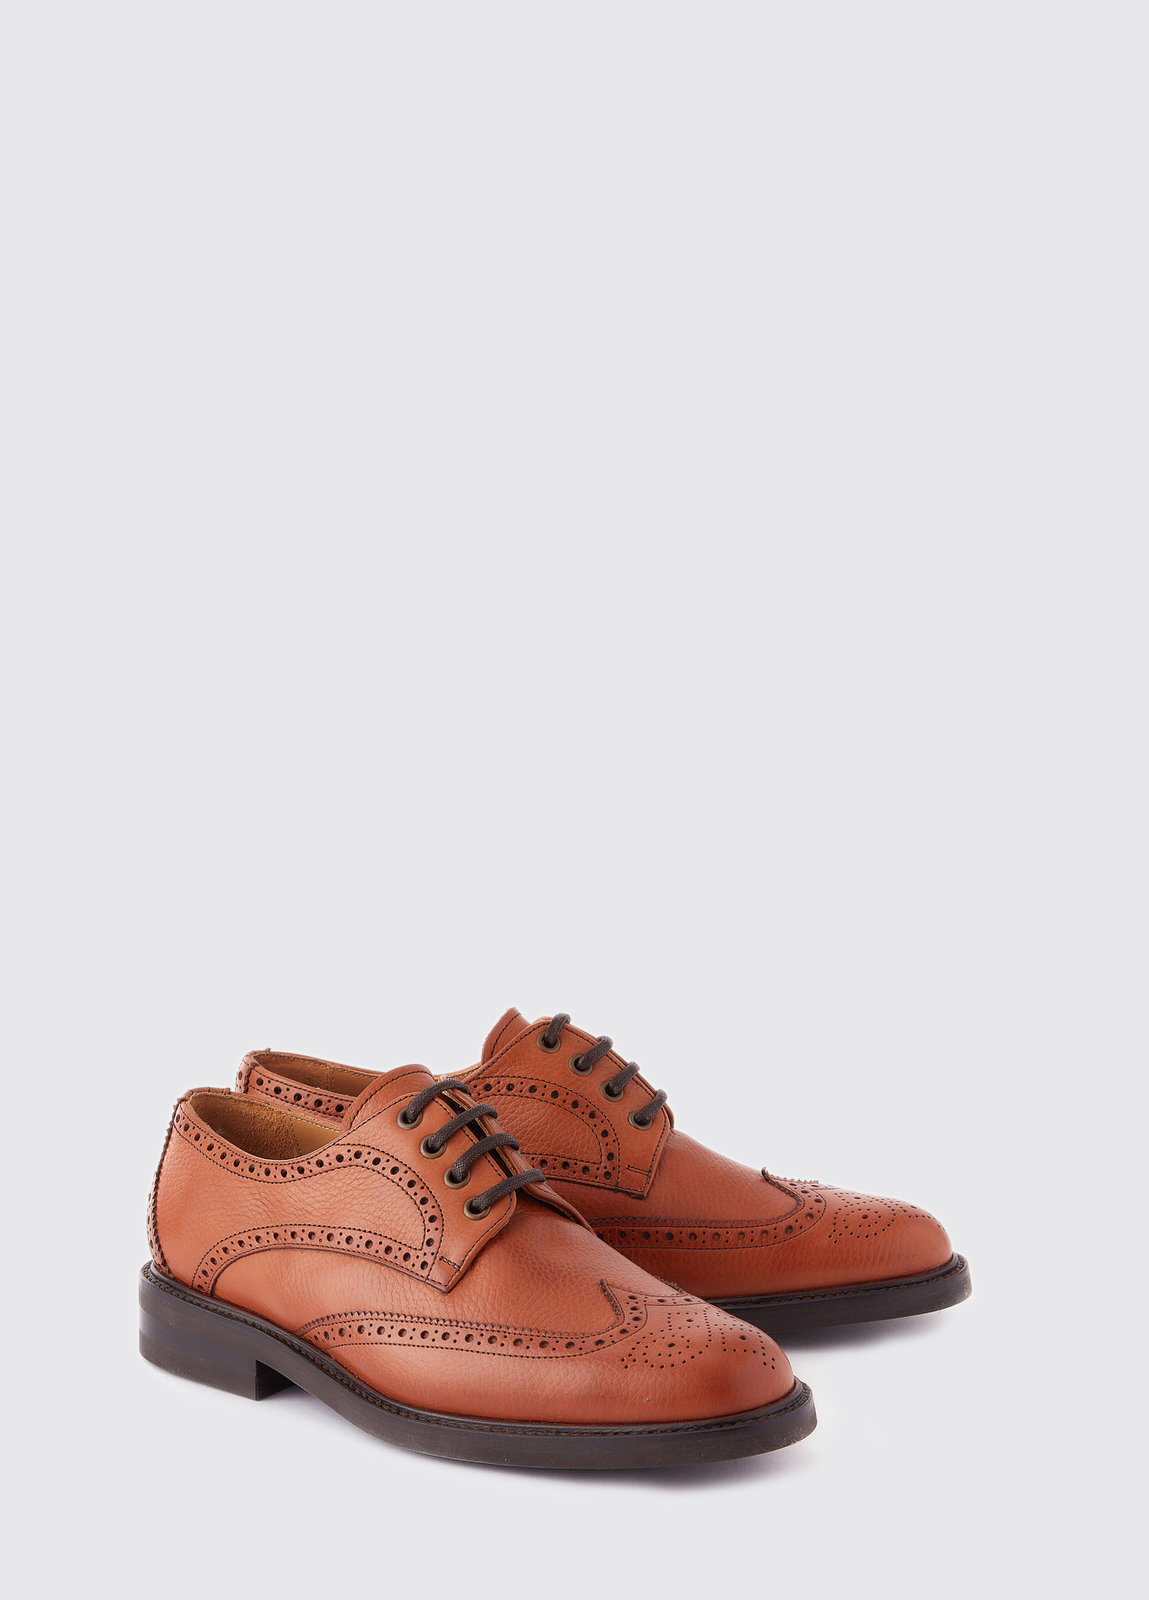 Derry Goodyear Brogue Boot - Tan